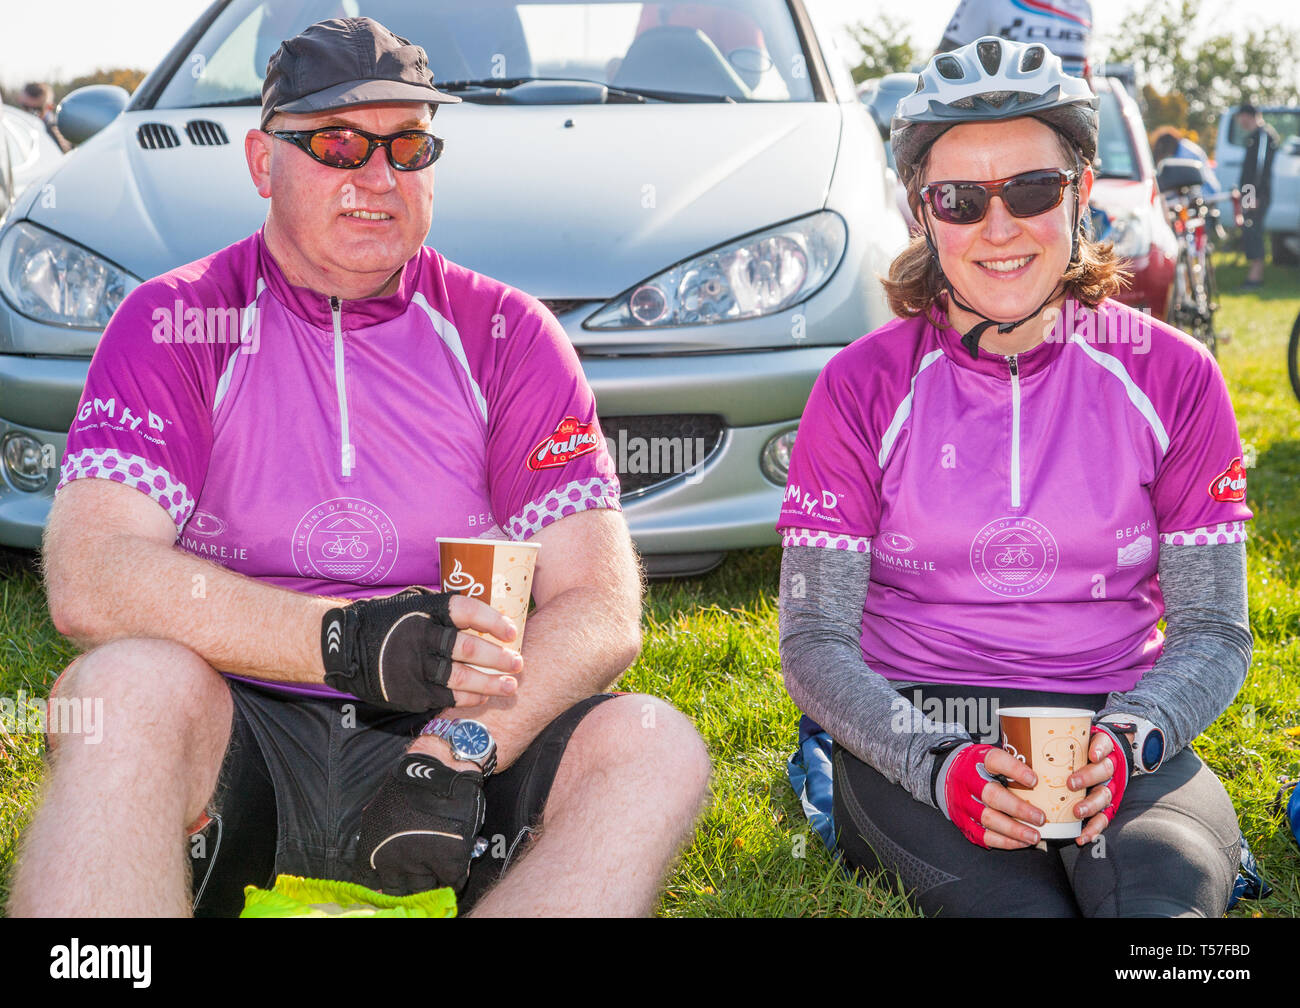 Crosshaven, County Cork, Ireland. 22nd April, 2019. /Michael Carrington, Cork City and Mary Gurrie, Dublin at the starting line of the Fort 2 Fort Charity Cycle at Camden Fort Meagher Crosshaven Co. Cork. The cycle is to help raise funds for the Mercy University Hospital Foundation, four Cork City and County Lions Clubs, and Camden Fort Meagher Restoration. Credit: David Creedon/Alamy Live News Stock Photo